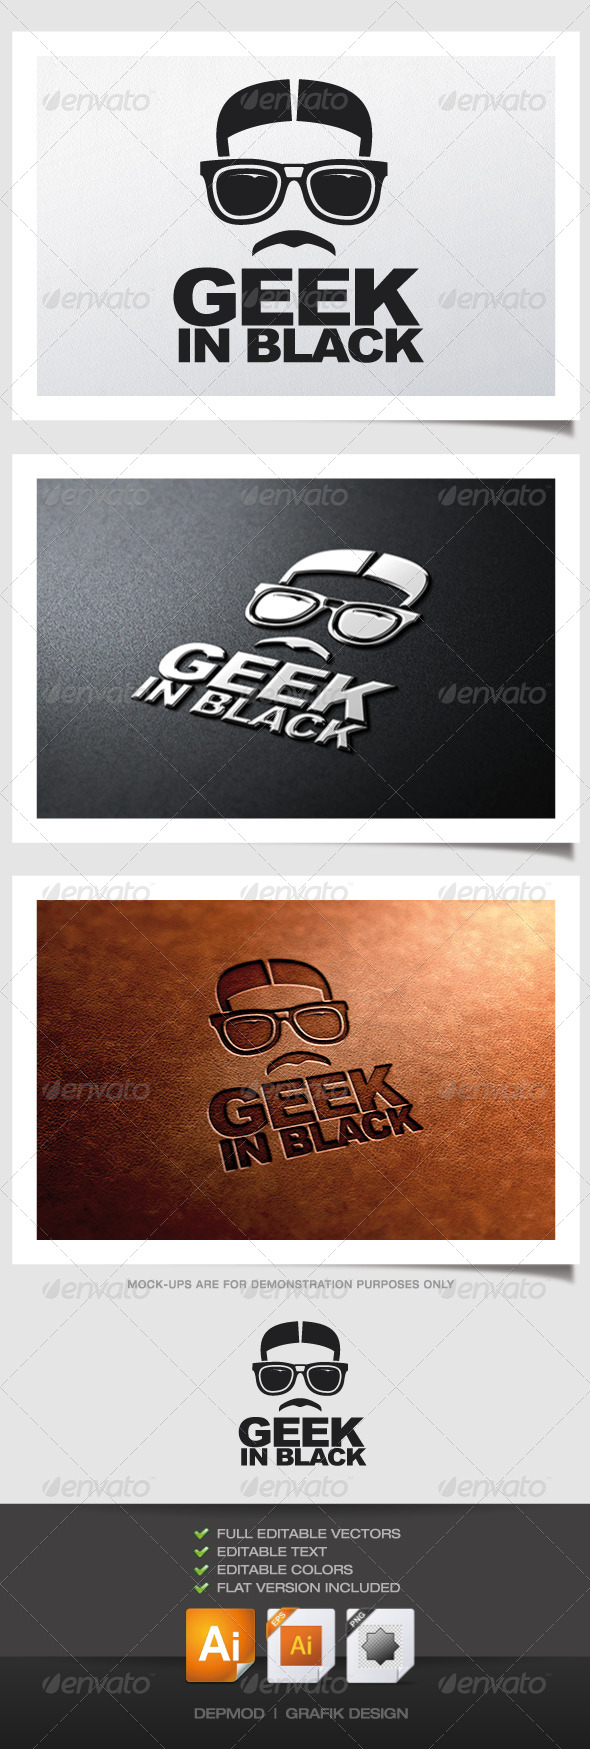 Geek In Black Logo